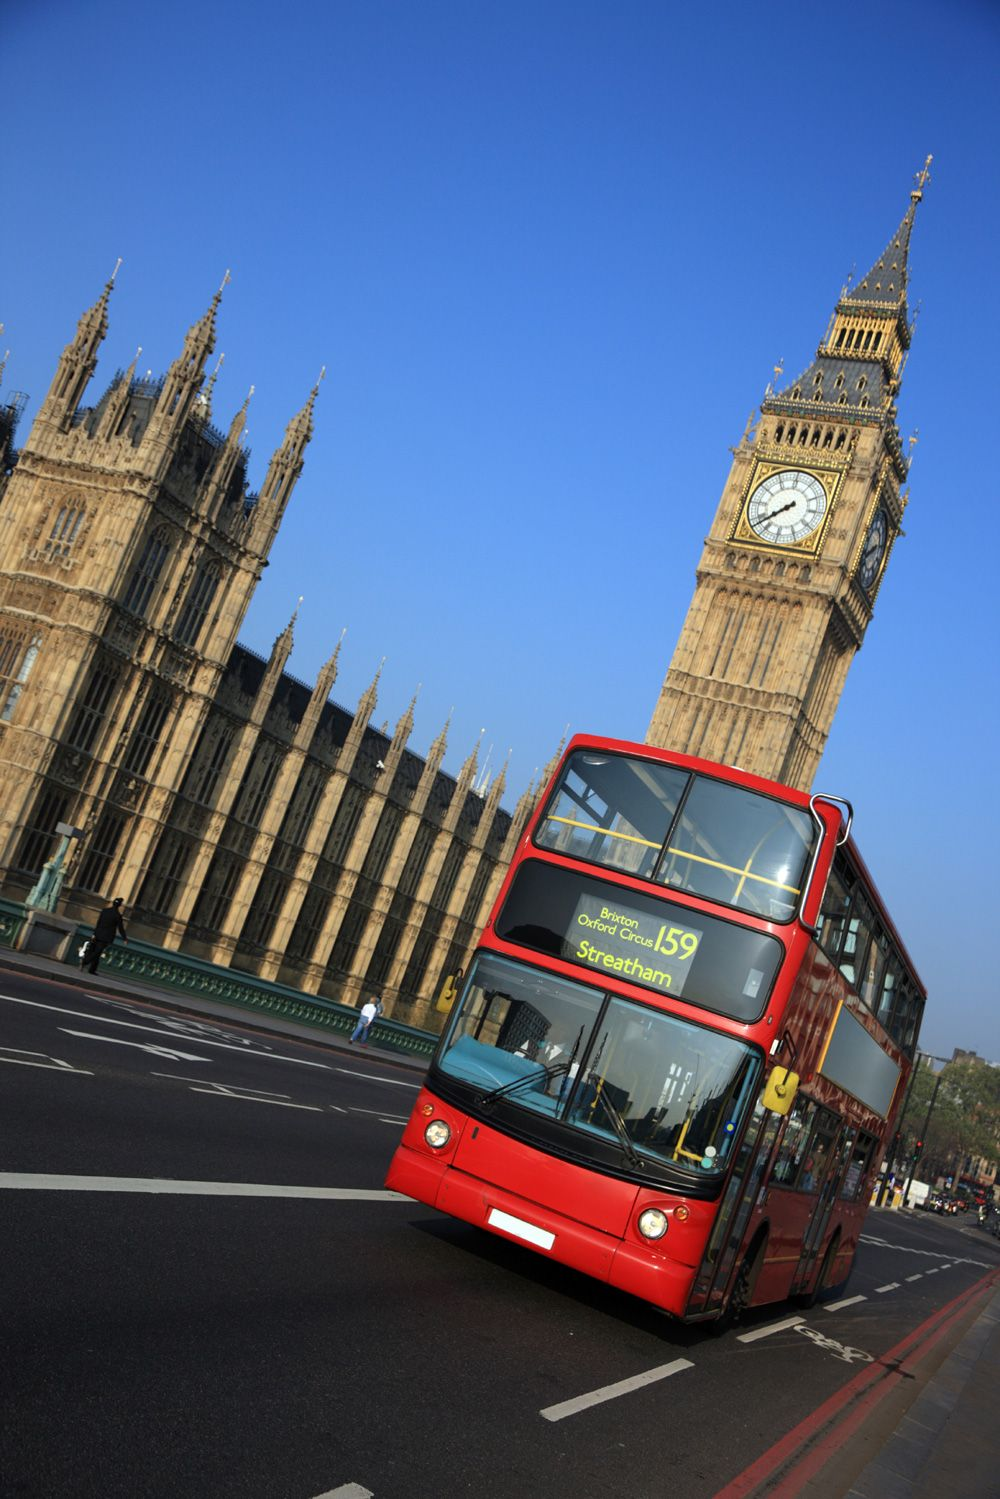 Visit London's world class attractions, You have to live the experience with www.travelerdestinos.com